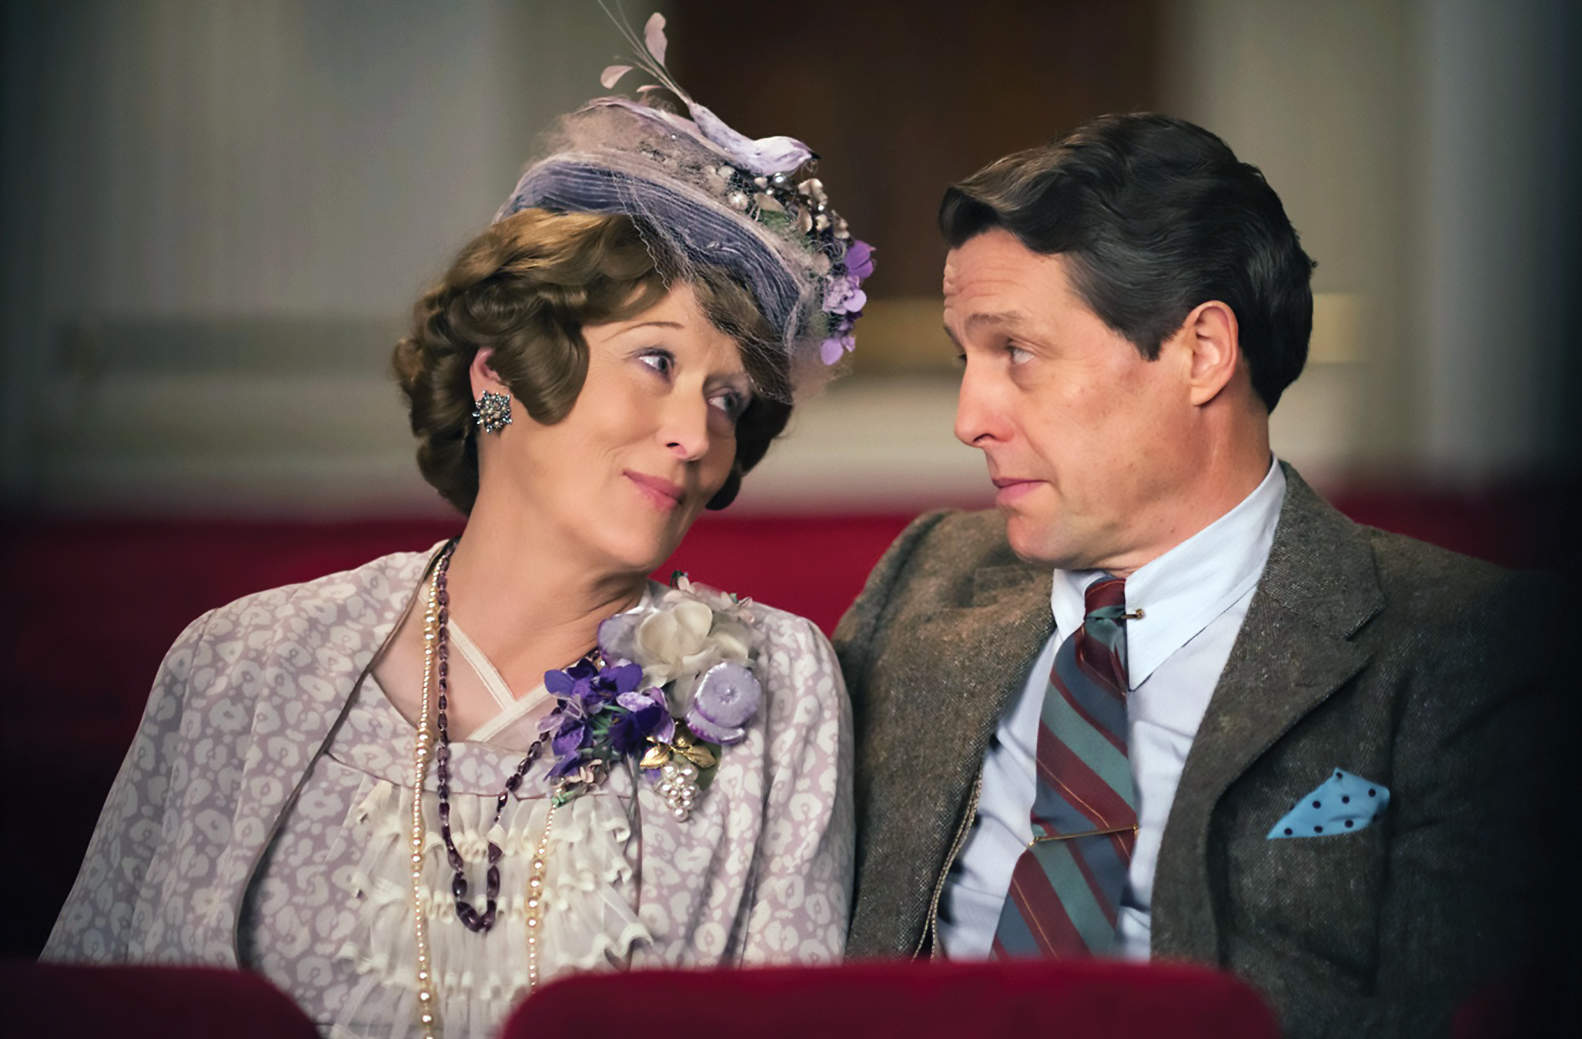 Florence Foster Jenkins shows the delight of love's delusions